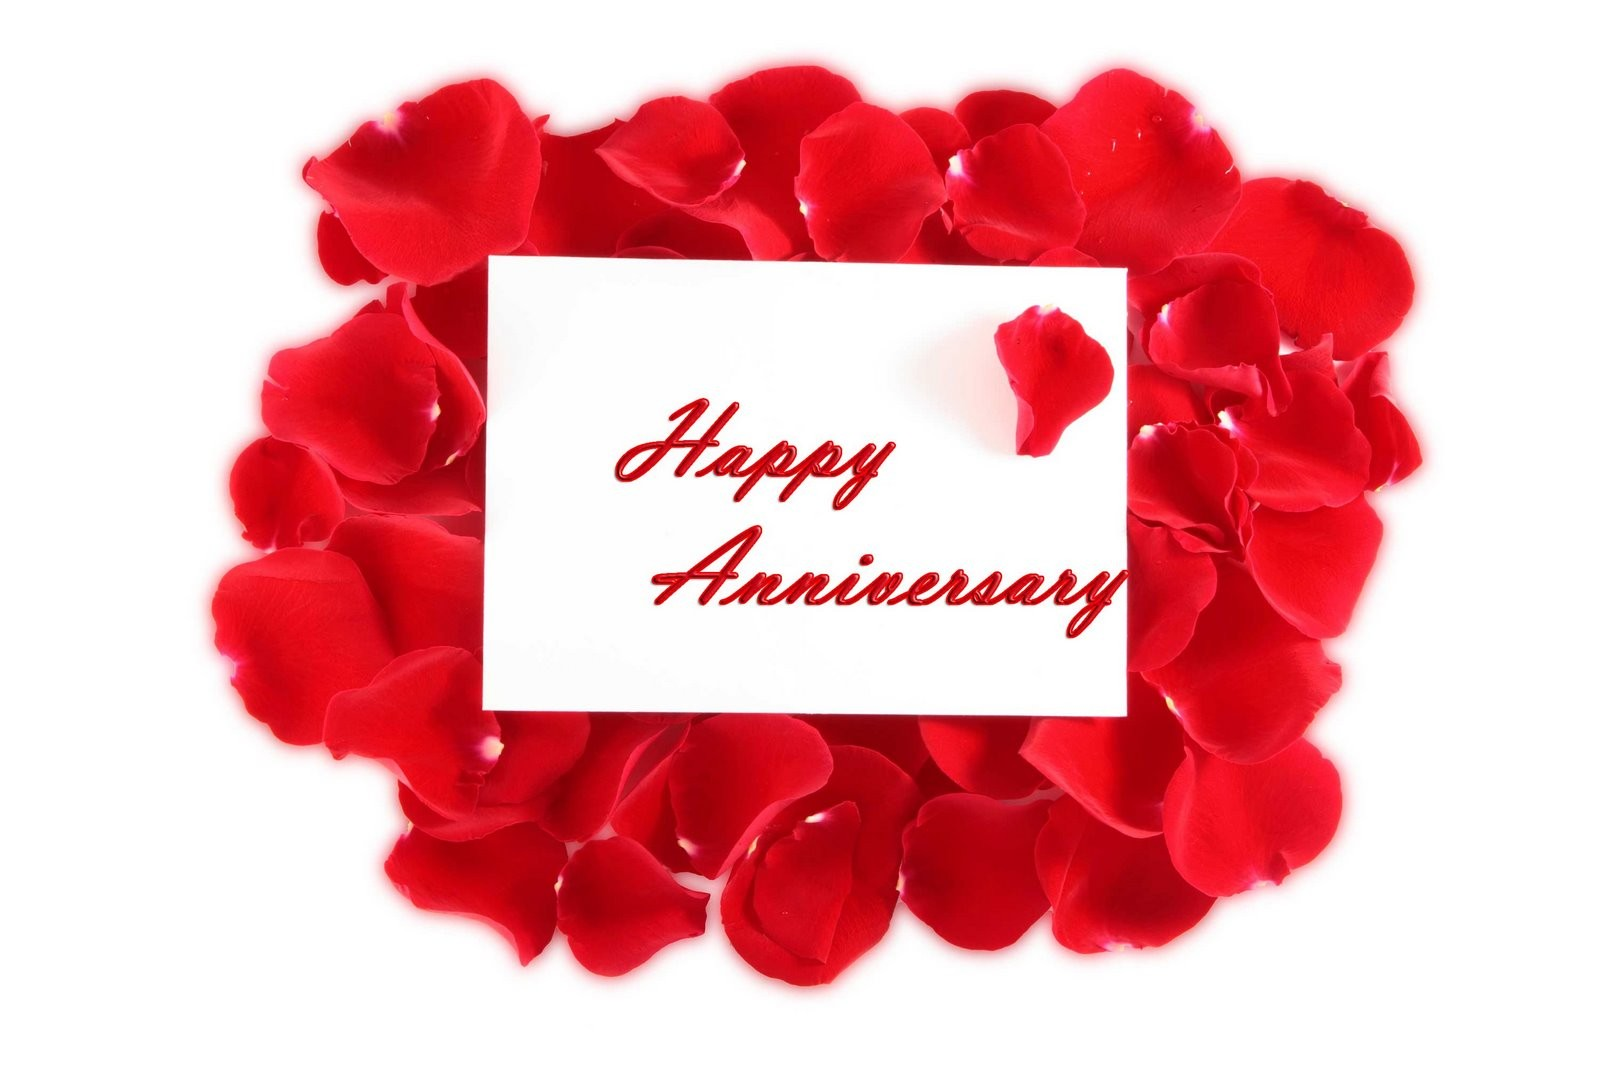 Happy marriage anniversary hd wallpaper inspiring quotes